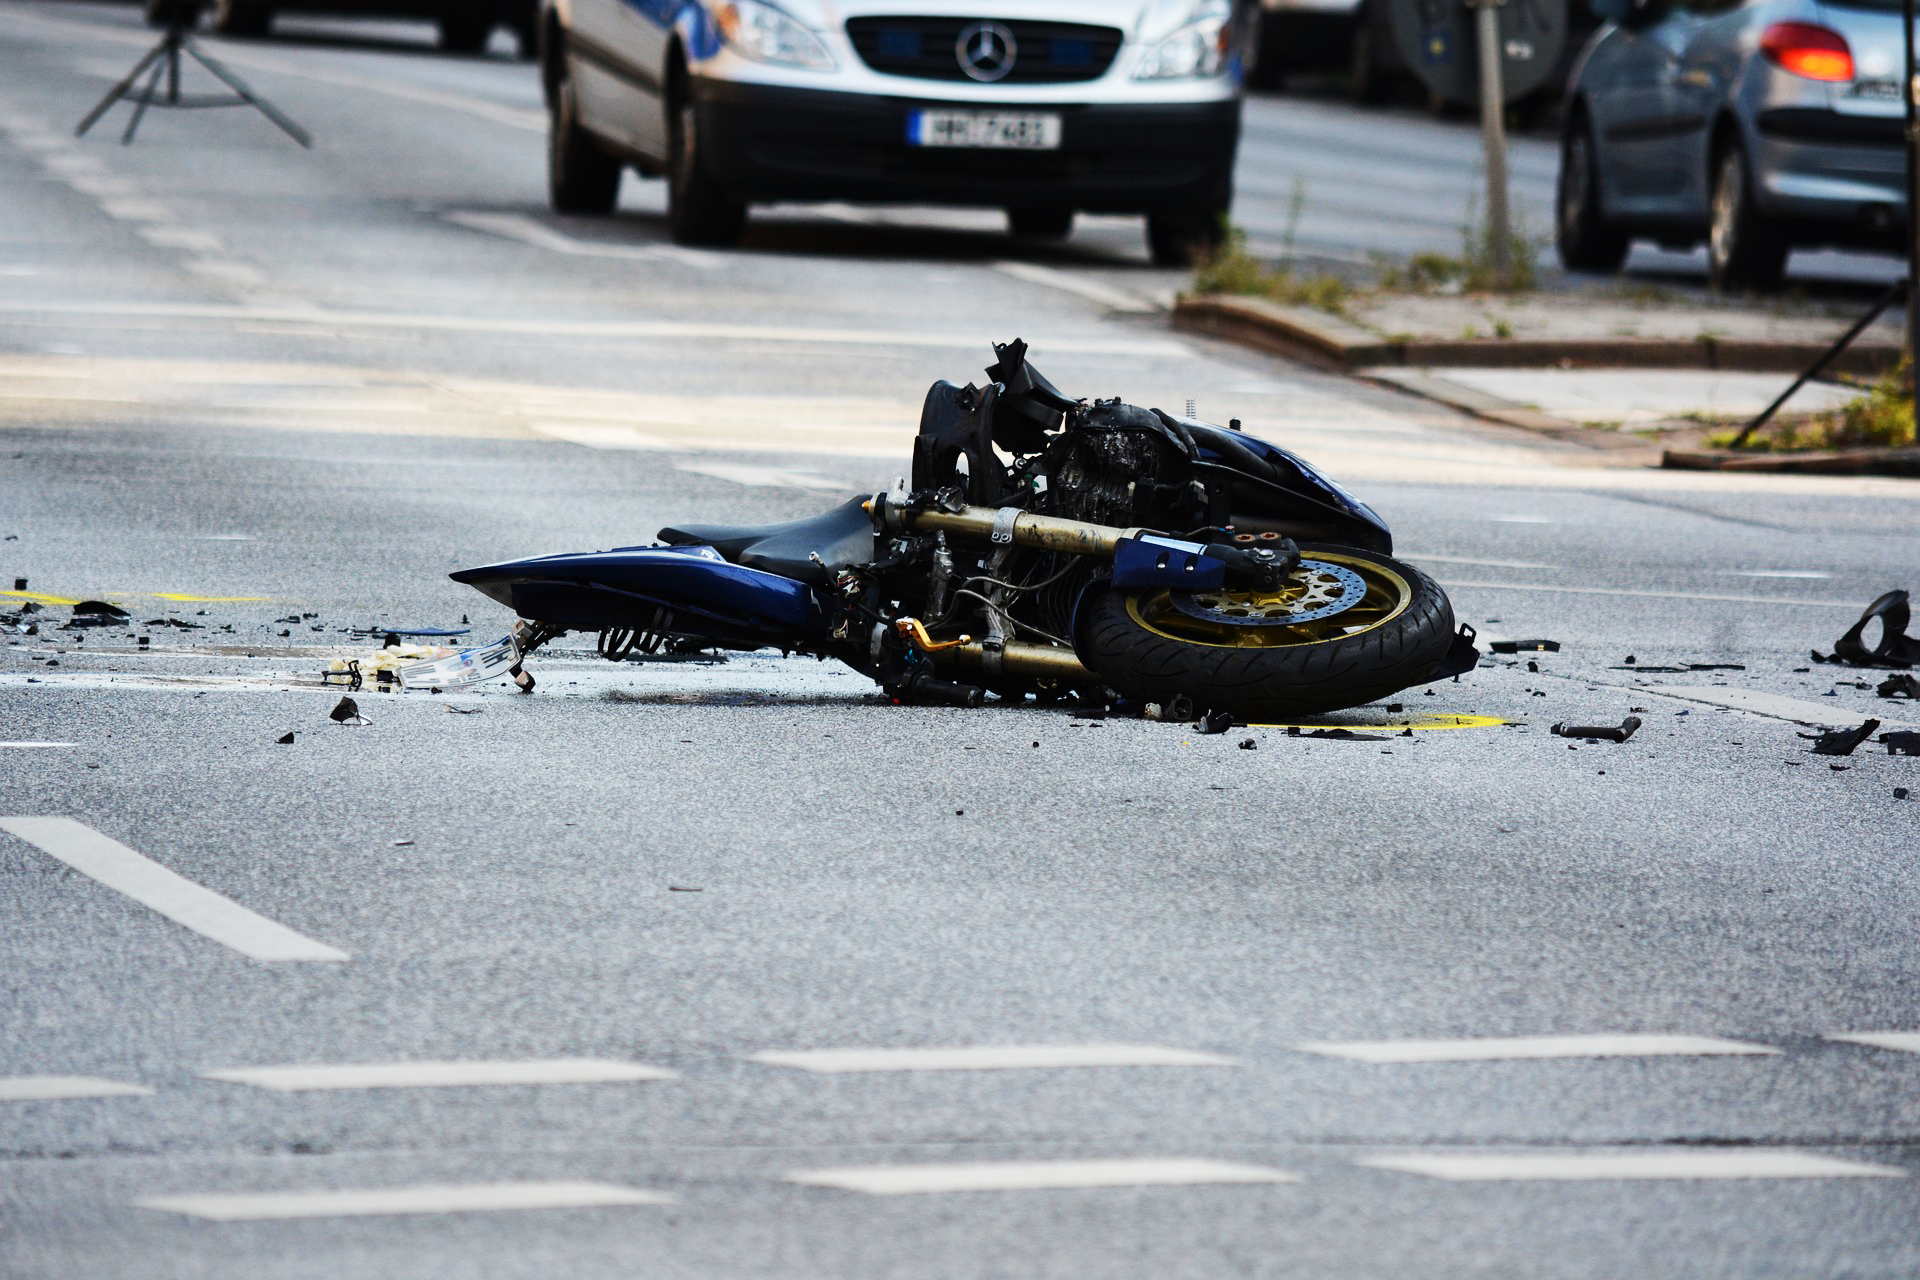 Why Hire A Motorcycle Accident Lawyer?